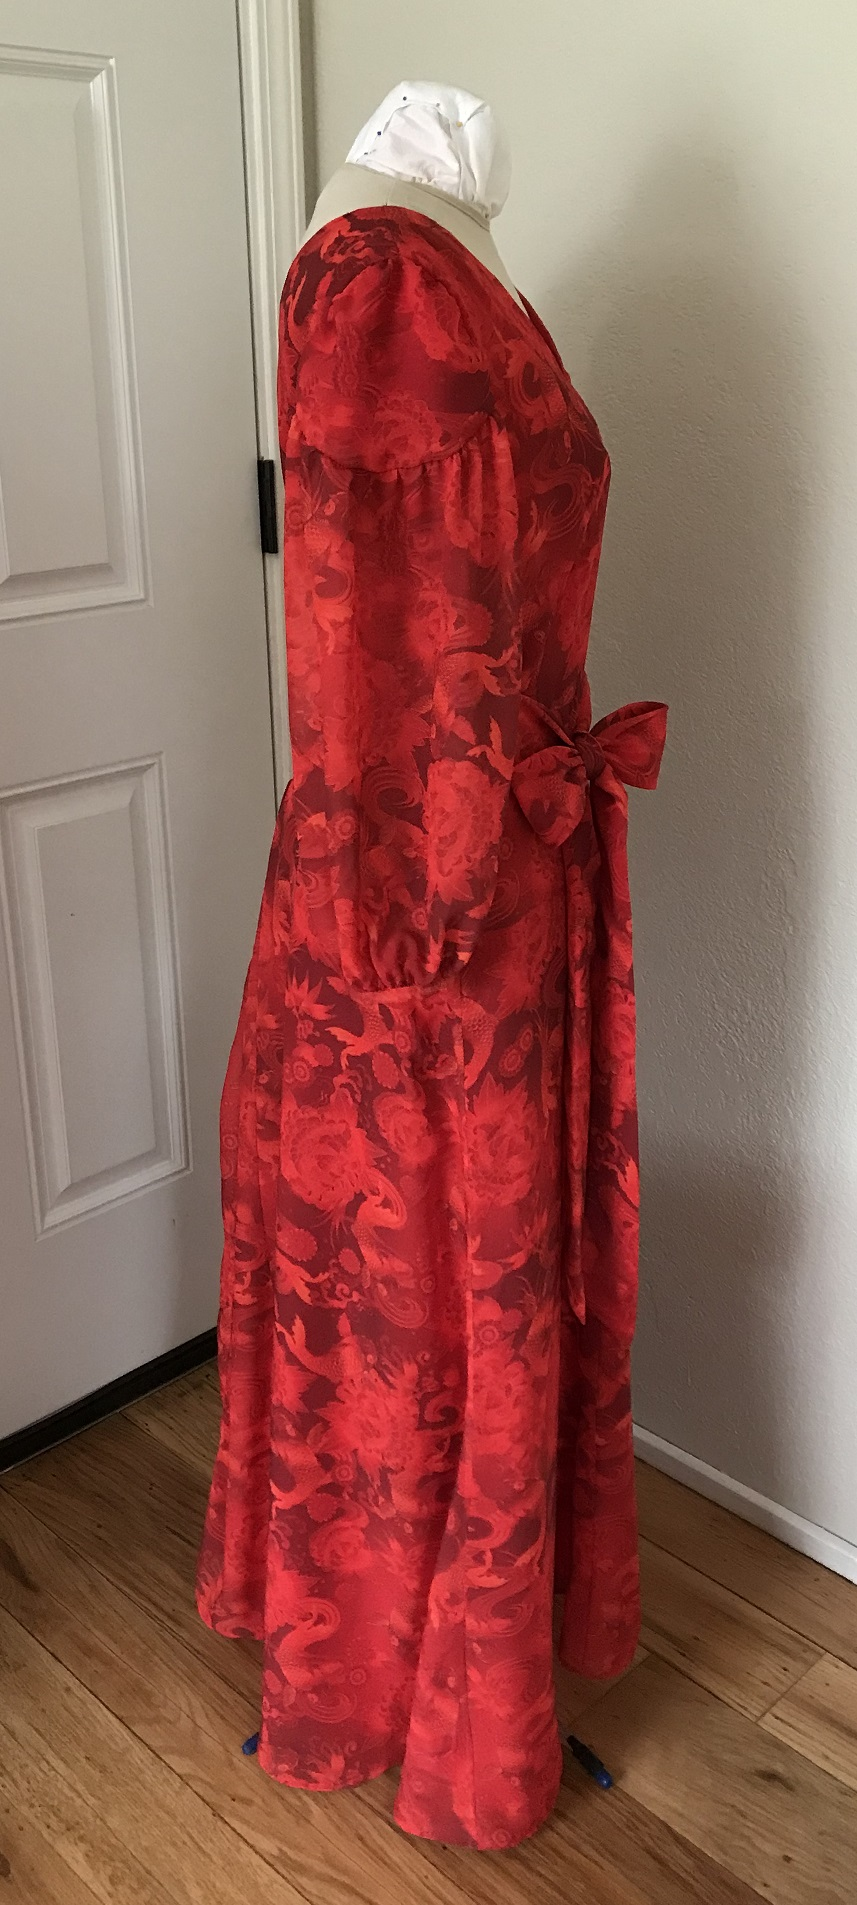 1927 Reproduction Red Koi Dress Right.